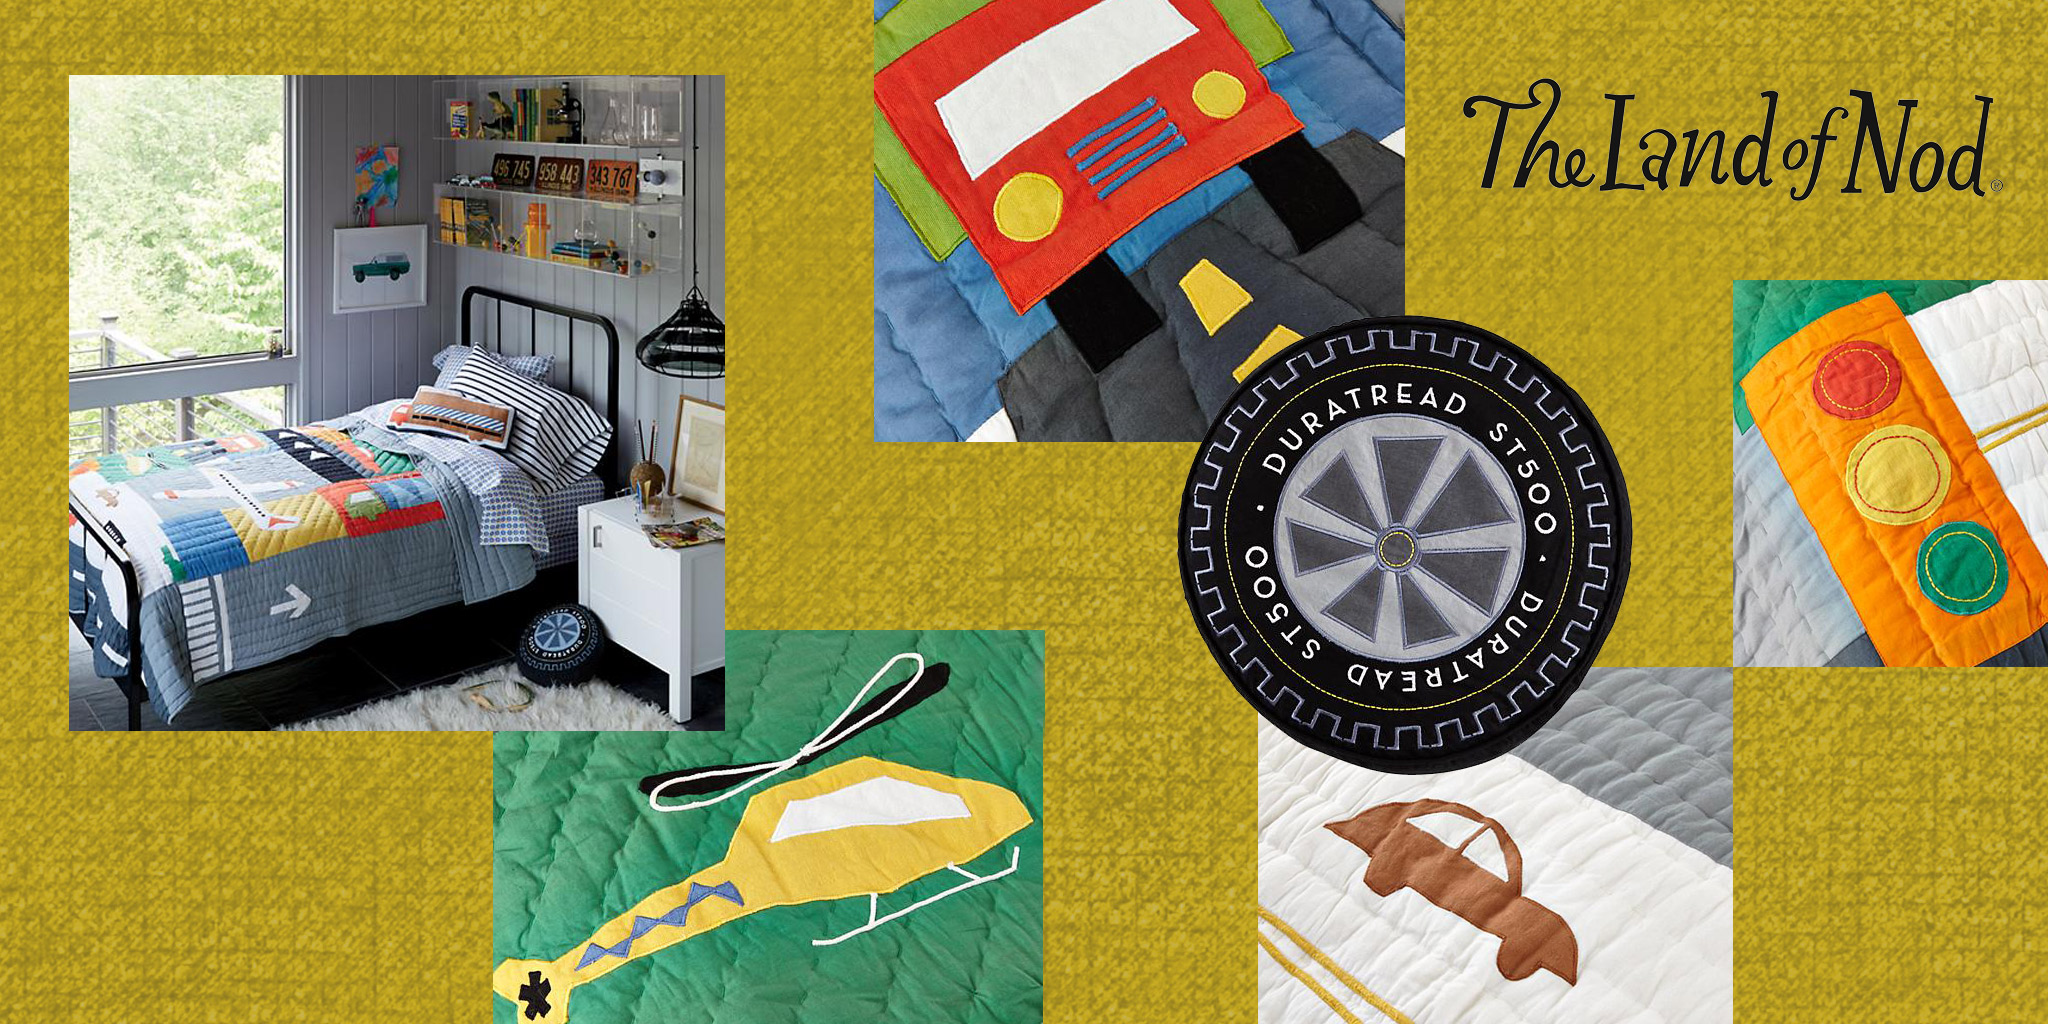 ILLUSTRATION & PRODUCT  Land of Nod  The national children's store needed a new quilt and pillow update to their proven and successful transportation category. We delivered a whimsical and colorful solution with fun shapes and textures depicting the bustling urban machines. A quilt, sheets and coordinating tire and truck pillows were produced.